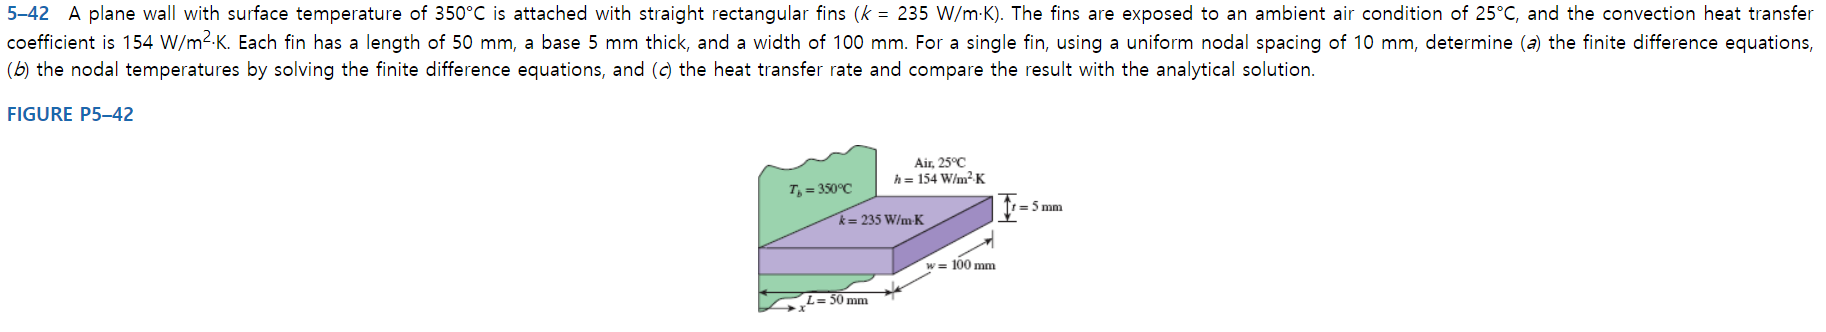 5-42 A plane wall with surface temperature of 350°C is attached with straight rectangular fins (k 235 W/m K). The fins are exposed to an ambient air condition of 25°C, and the convection heat transfer coefficient is 154 W/m2-K. Each fin has a length of 50 mm, a base 5 mm thick, and a width of 100 mm. For a single fin, using a uniform nodal spacing of 10 mm, determine (a) the finite difference equations, (b) the nodal temperatures by solving the finite difference equations, and (c) the heat transfer rate and compare the result with the analytical solution. FIGURE P5-42 Air, 25°C h= 154 W/m2K T,-350°C =5 mm k= 235 W/m K w= 100 mm L=50 mm